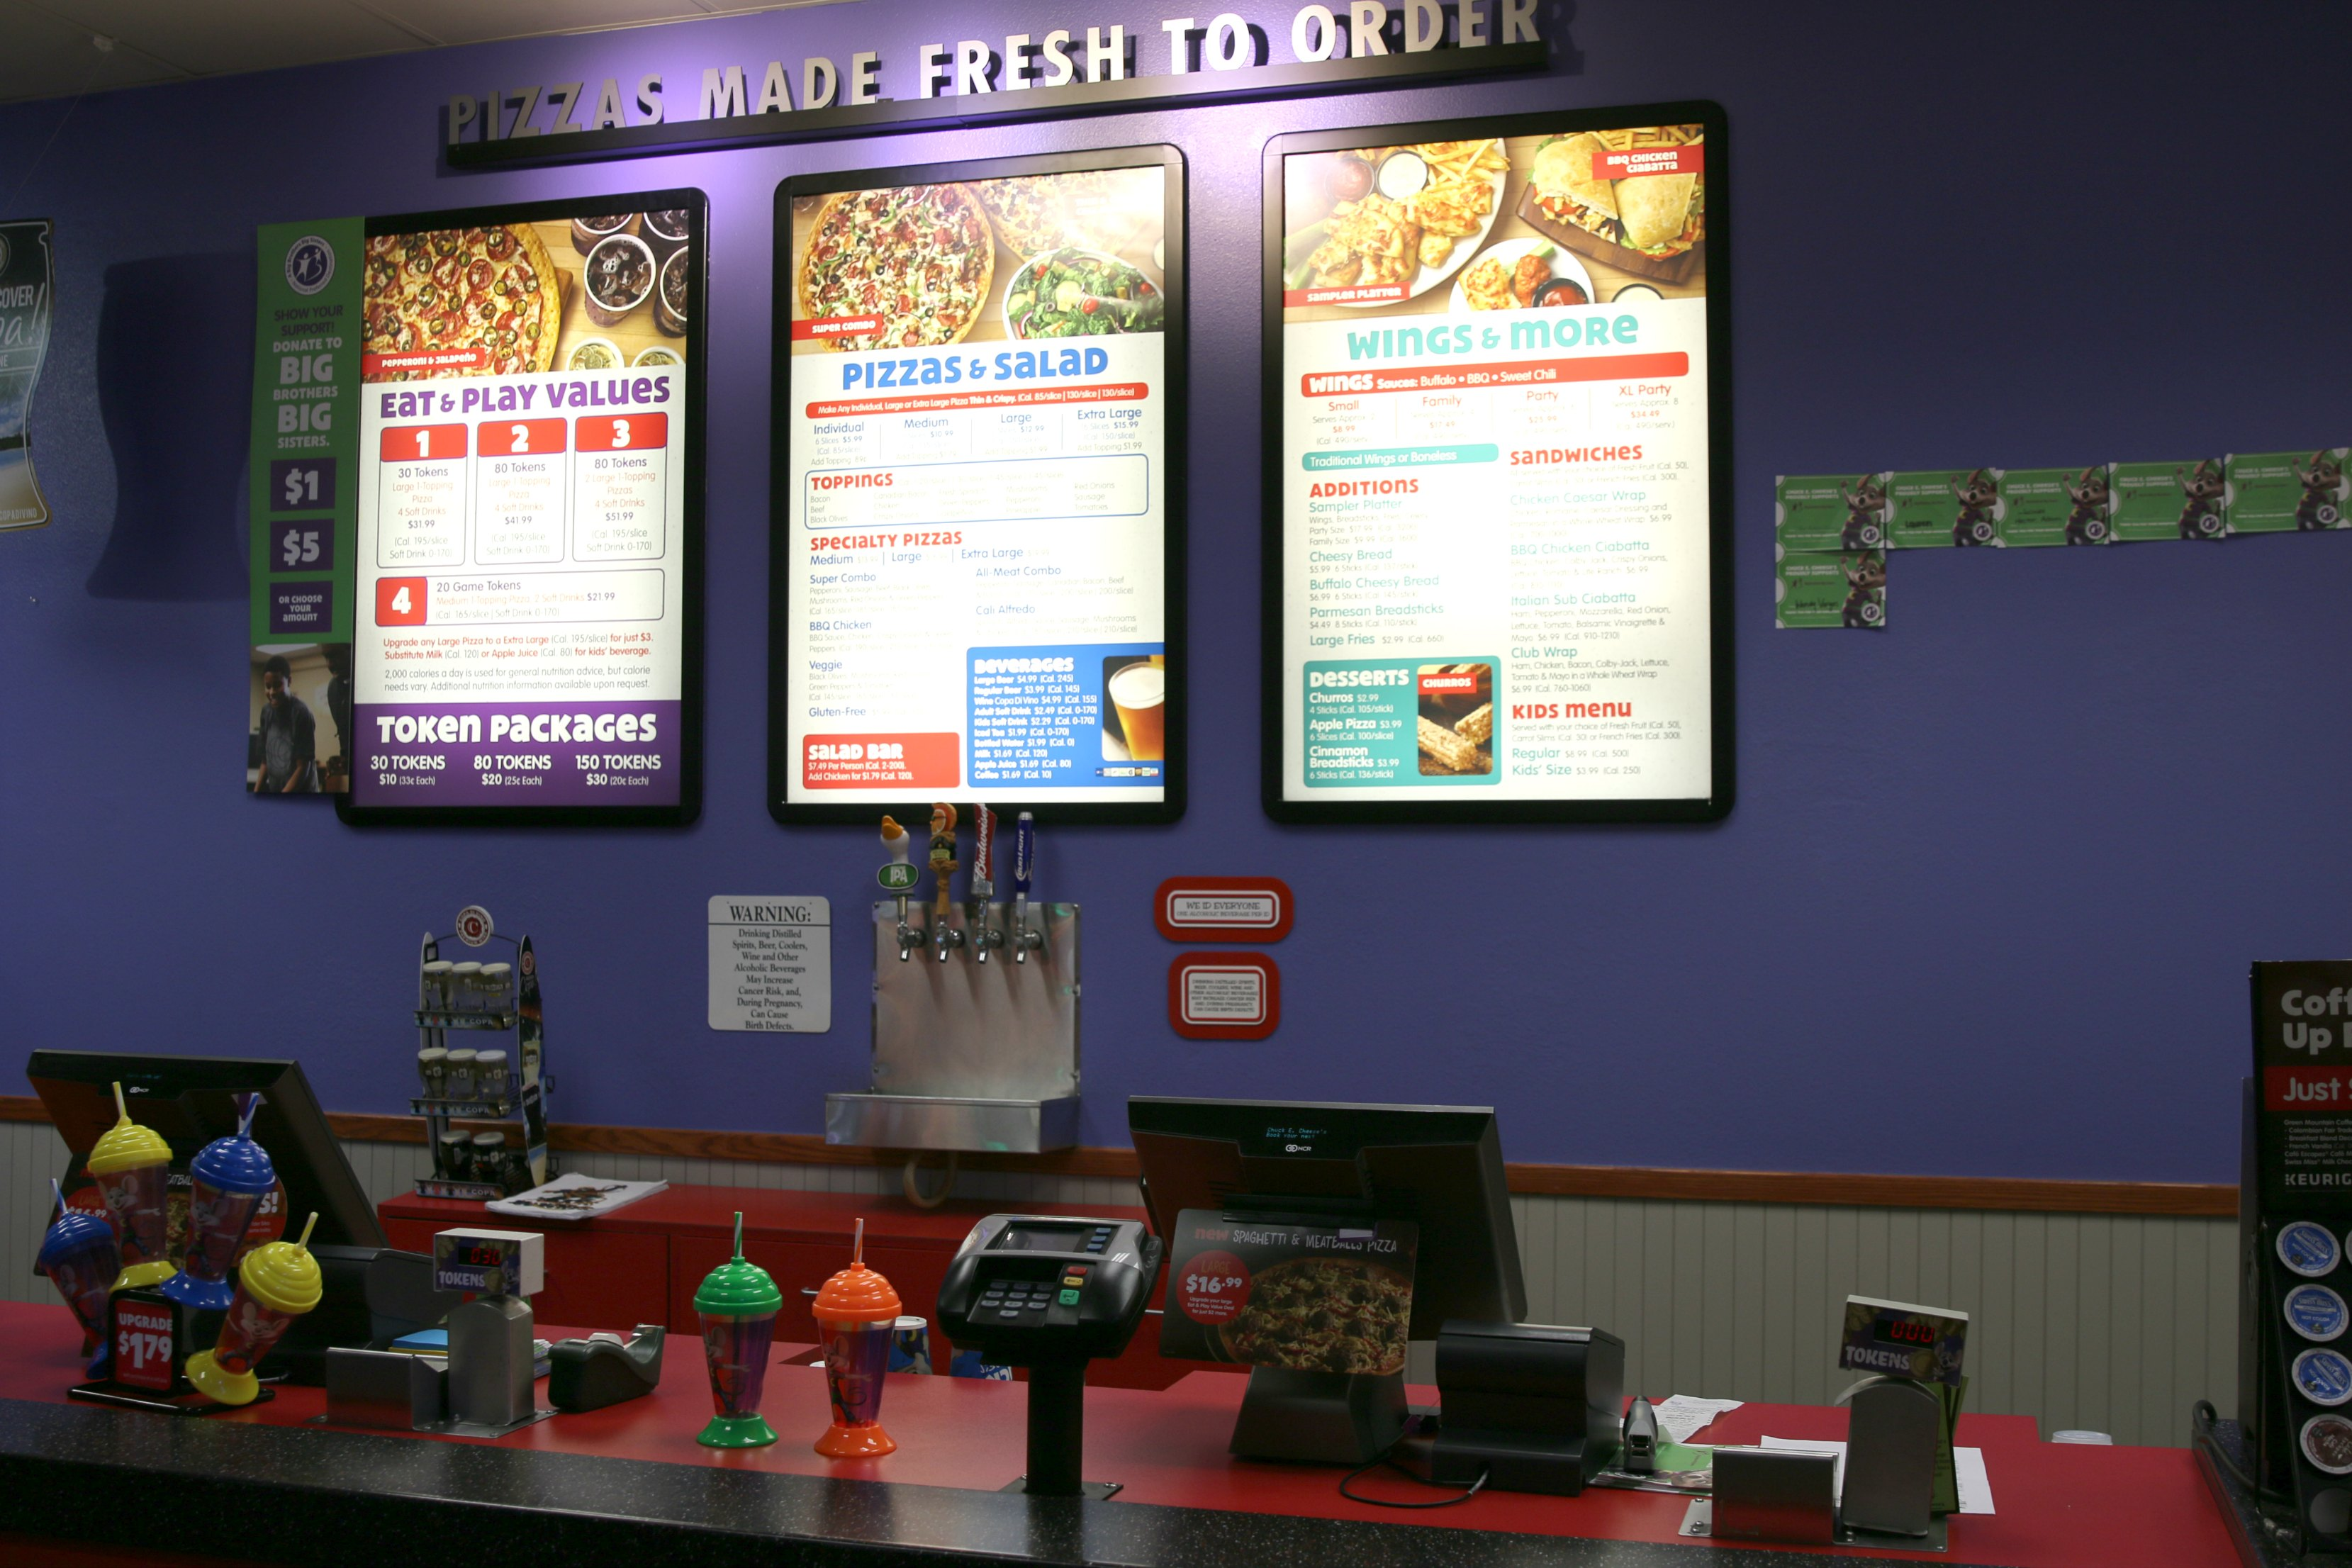 pizza deal at chuck e cheese